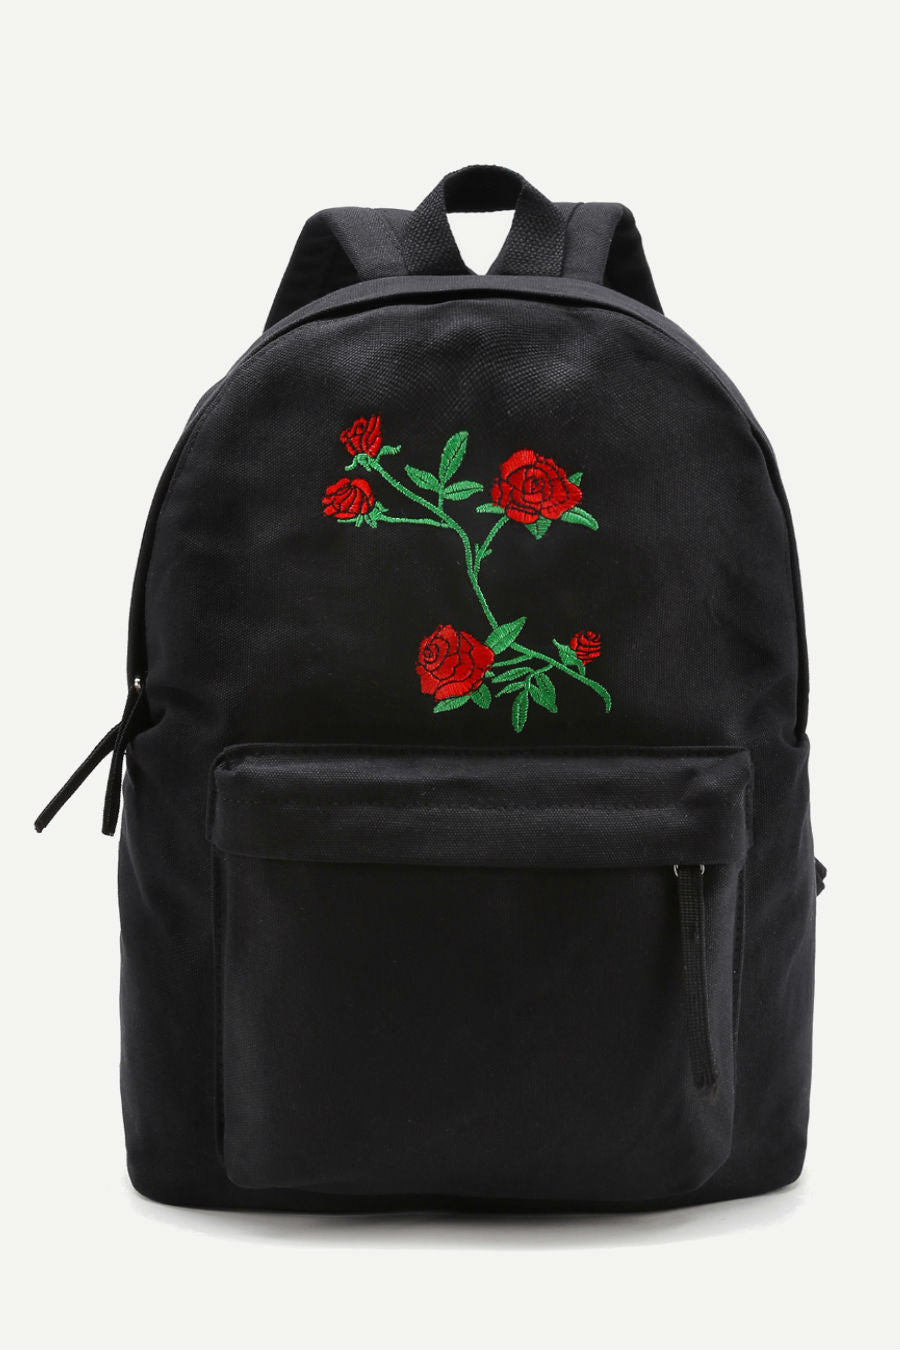 Embroidery Black Canvas Backpack